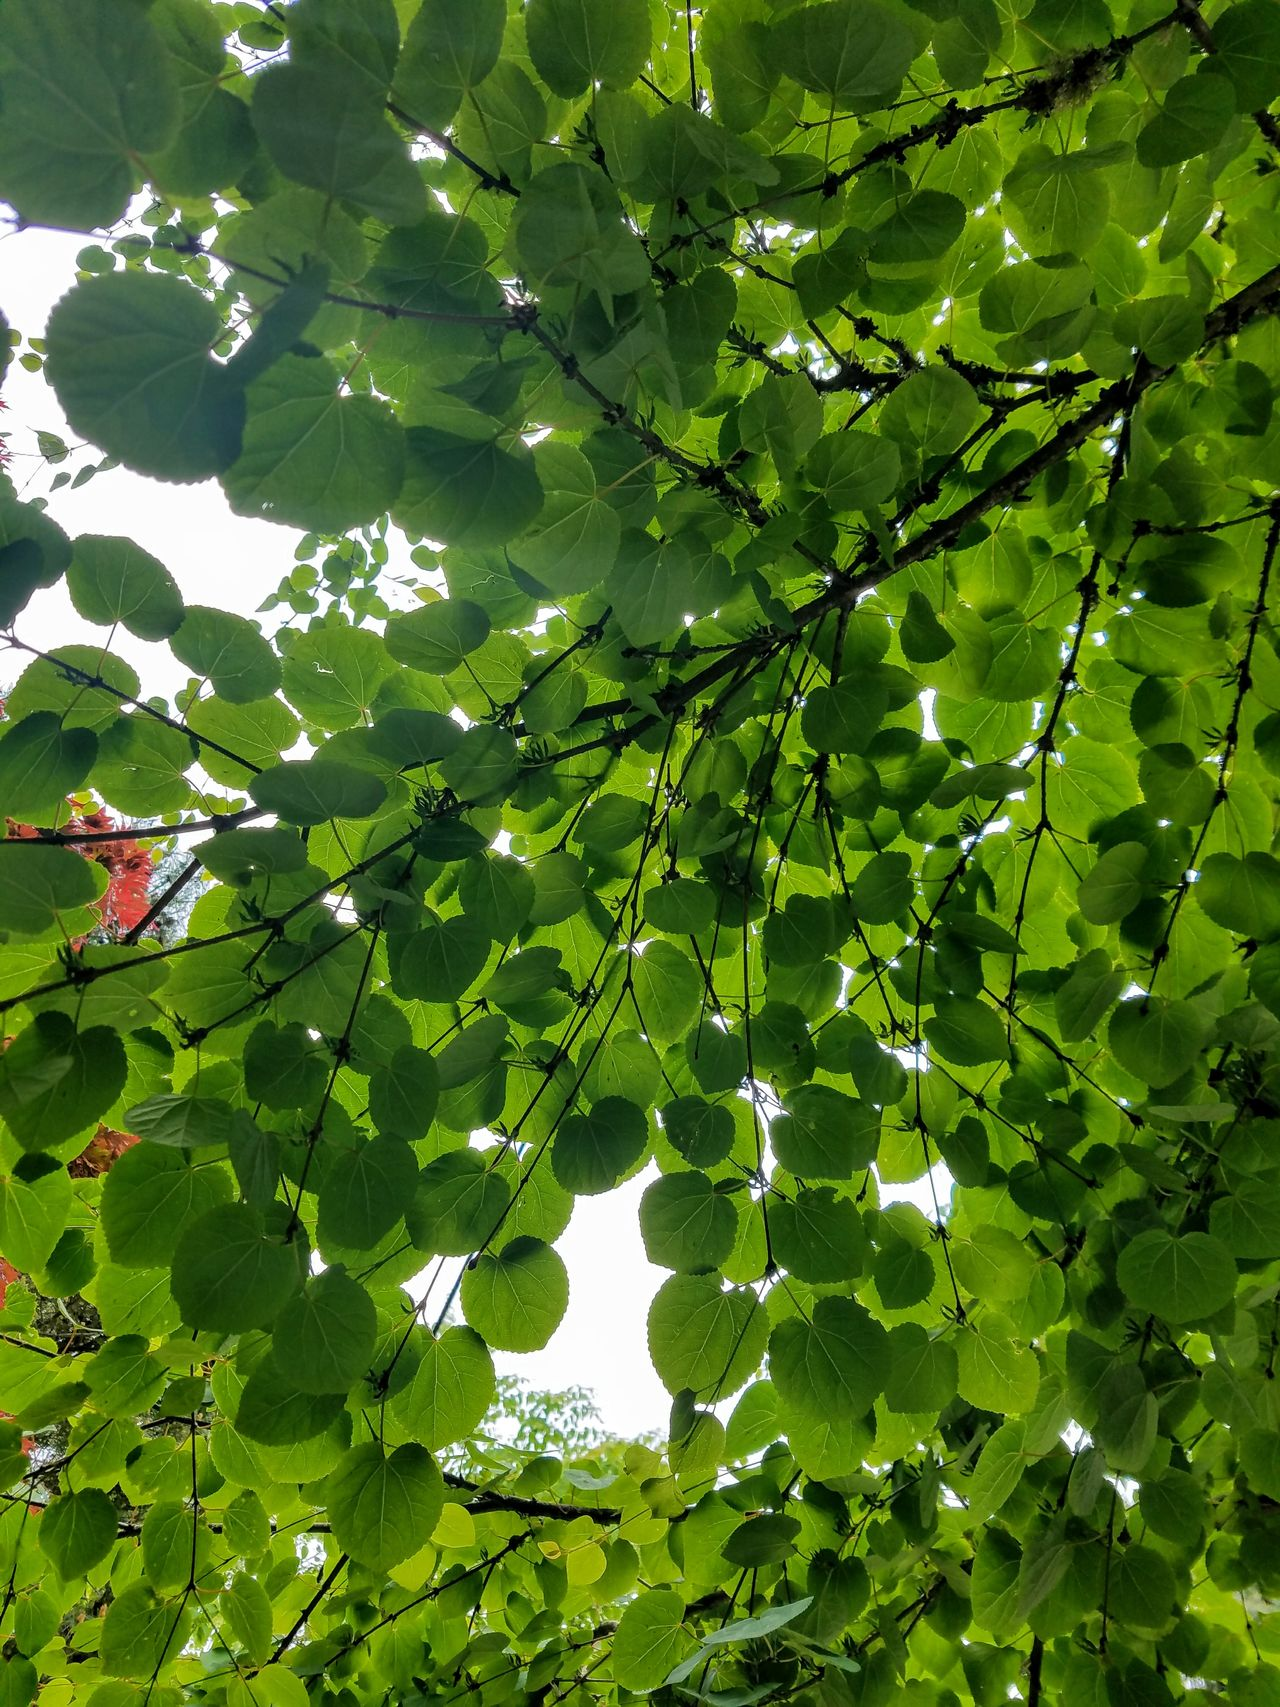 Heart shaped leaves💚 Green Color Nature Growth Day Leaf Low Angle View Beauty In Nature Outdoors Tree No People Sunlight Forest Freshness Branch Close-up Sky EyeEm Nature LoverNature Backgrounds Beauty In Nature Hearts Hearts In Nature Tree And Sky Tree The Great Outdoors - 2017 EyeEm Awards